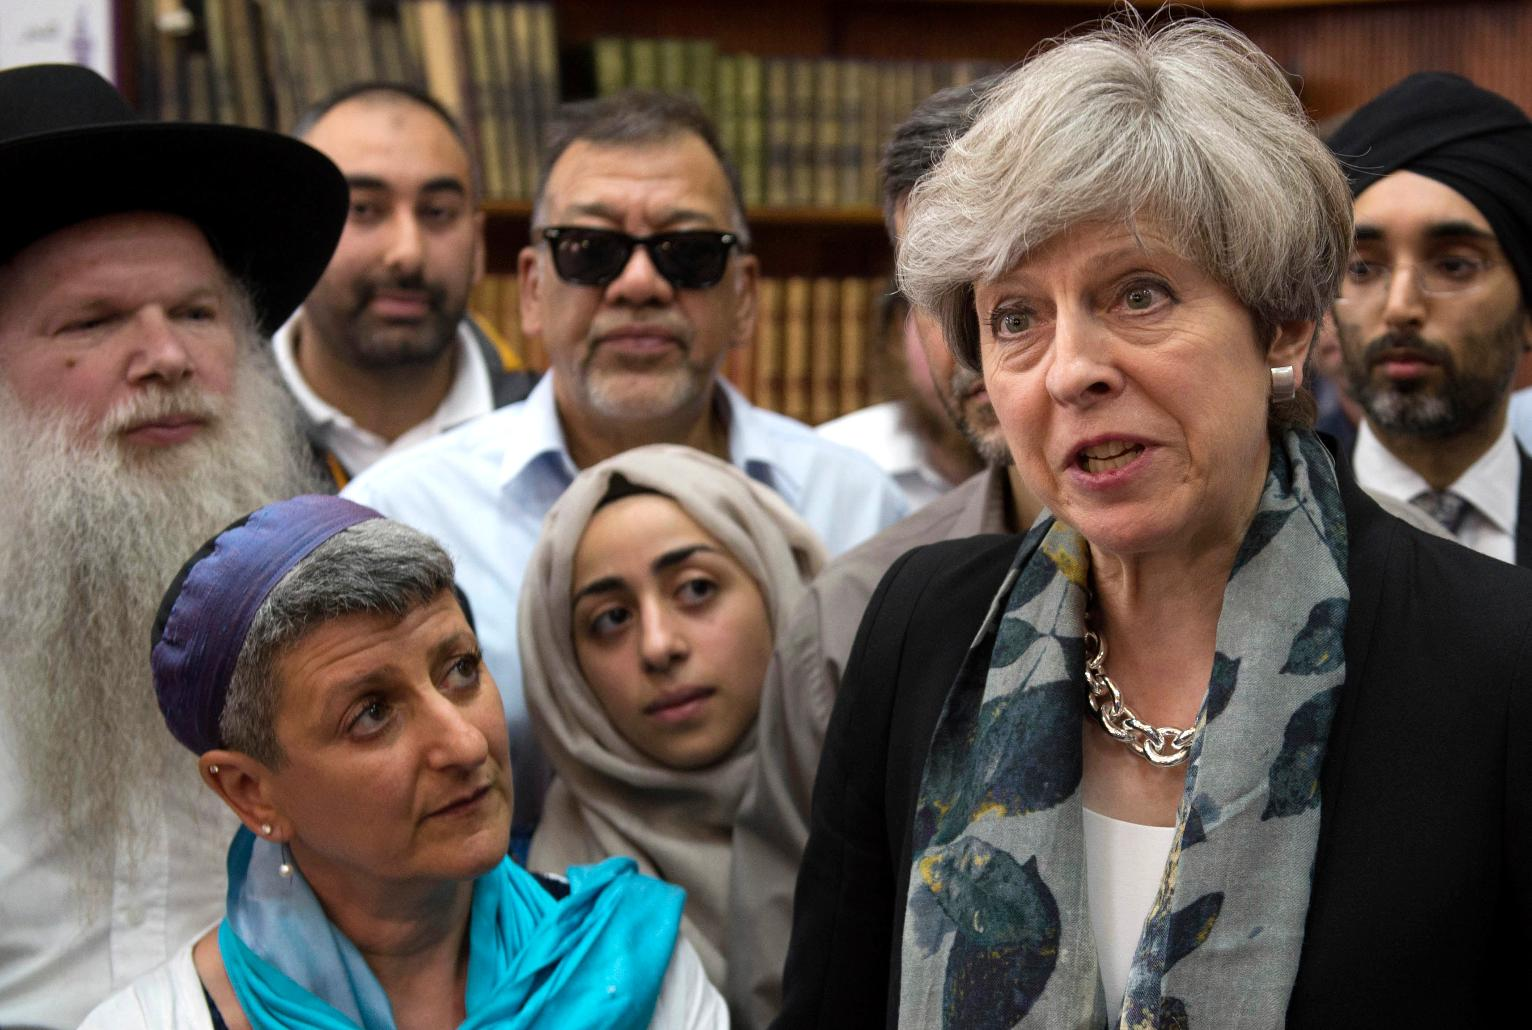 Uk muslims press for peace at 10 downing street - Van Attack On London Muslims Suggests New Polarization World News Us News